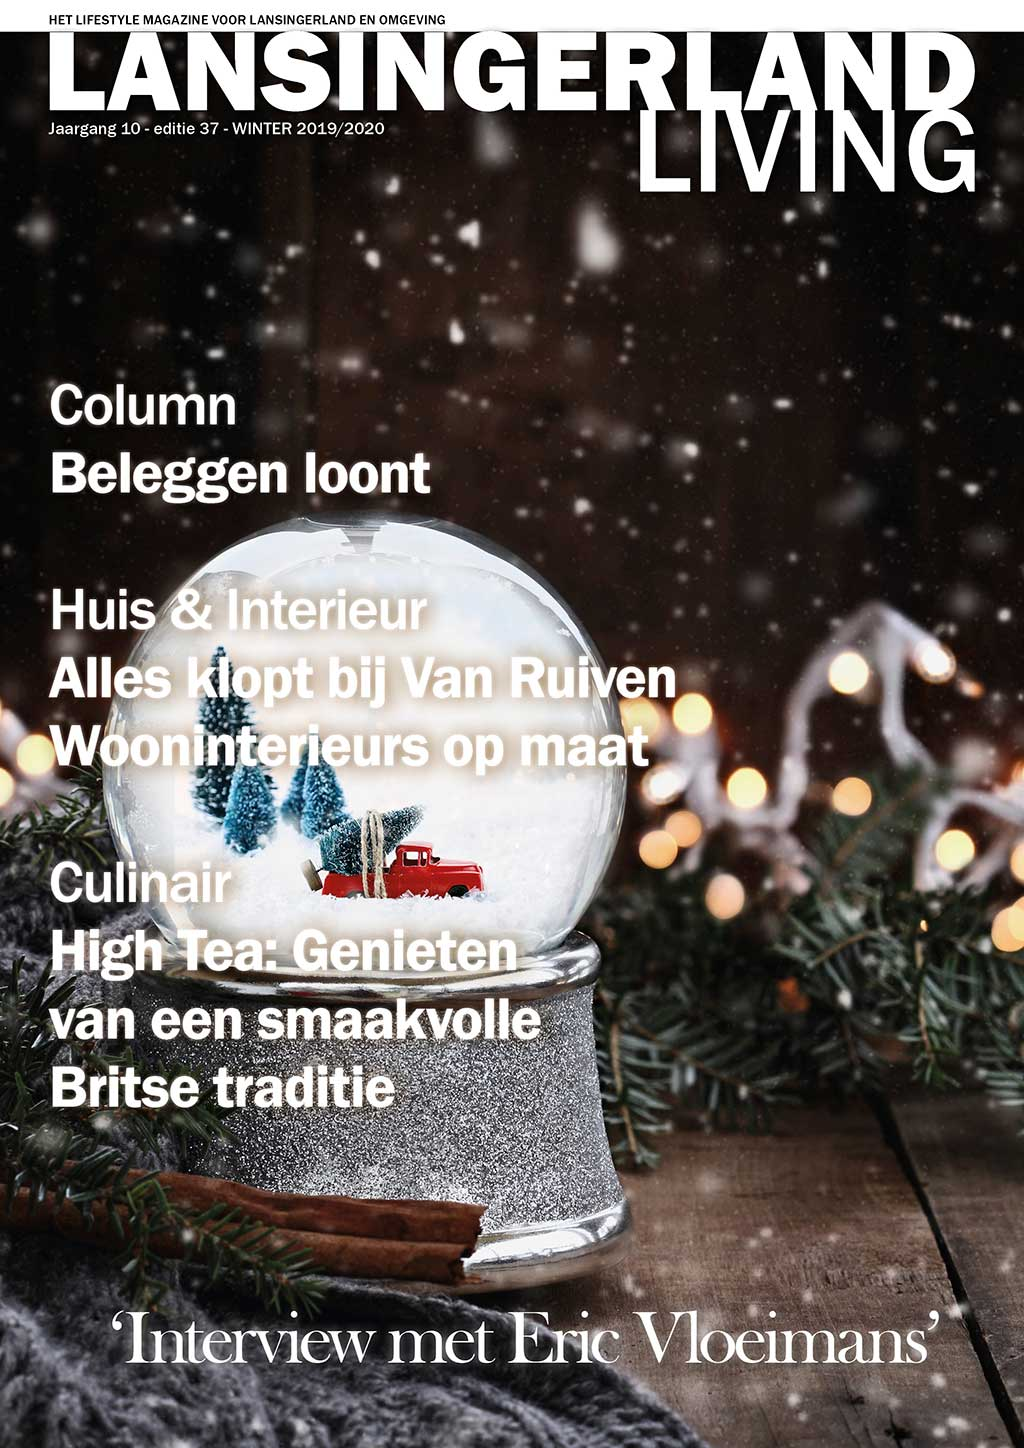 Cover Lansingerland Living editie 37 - winter 2019/20